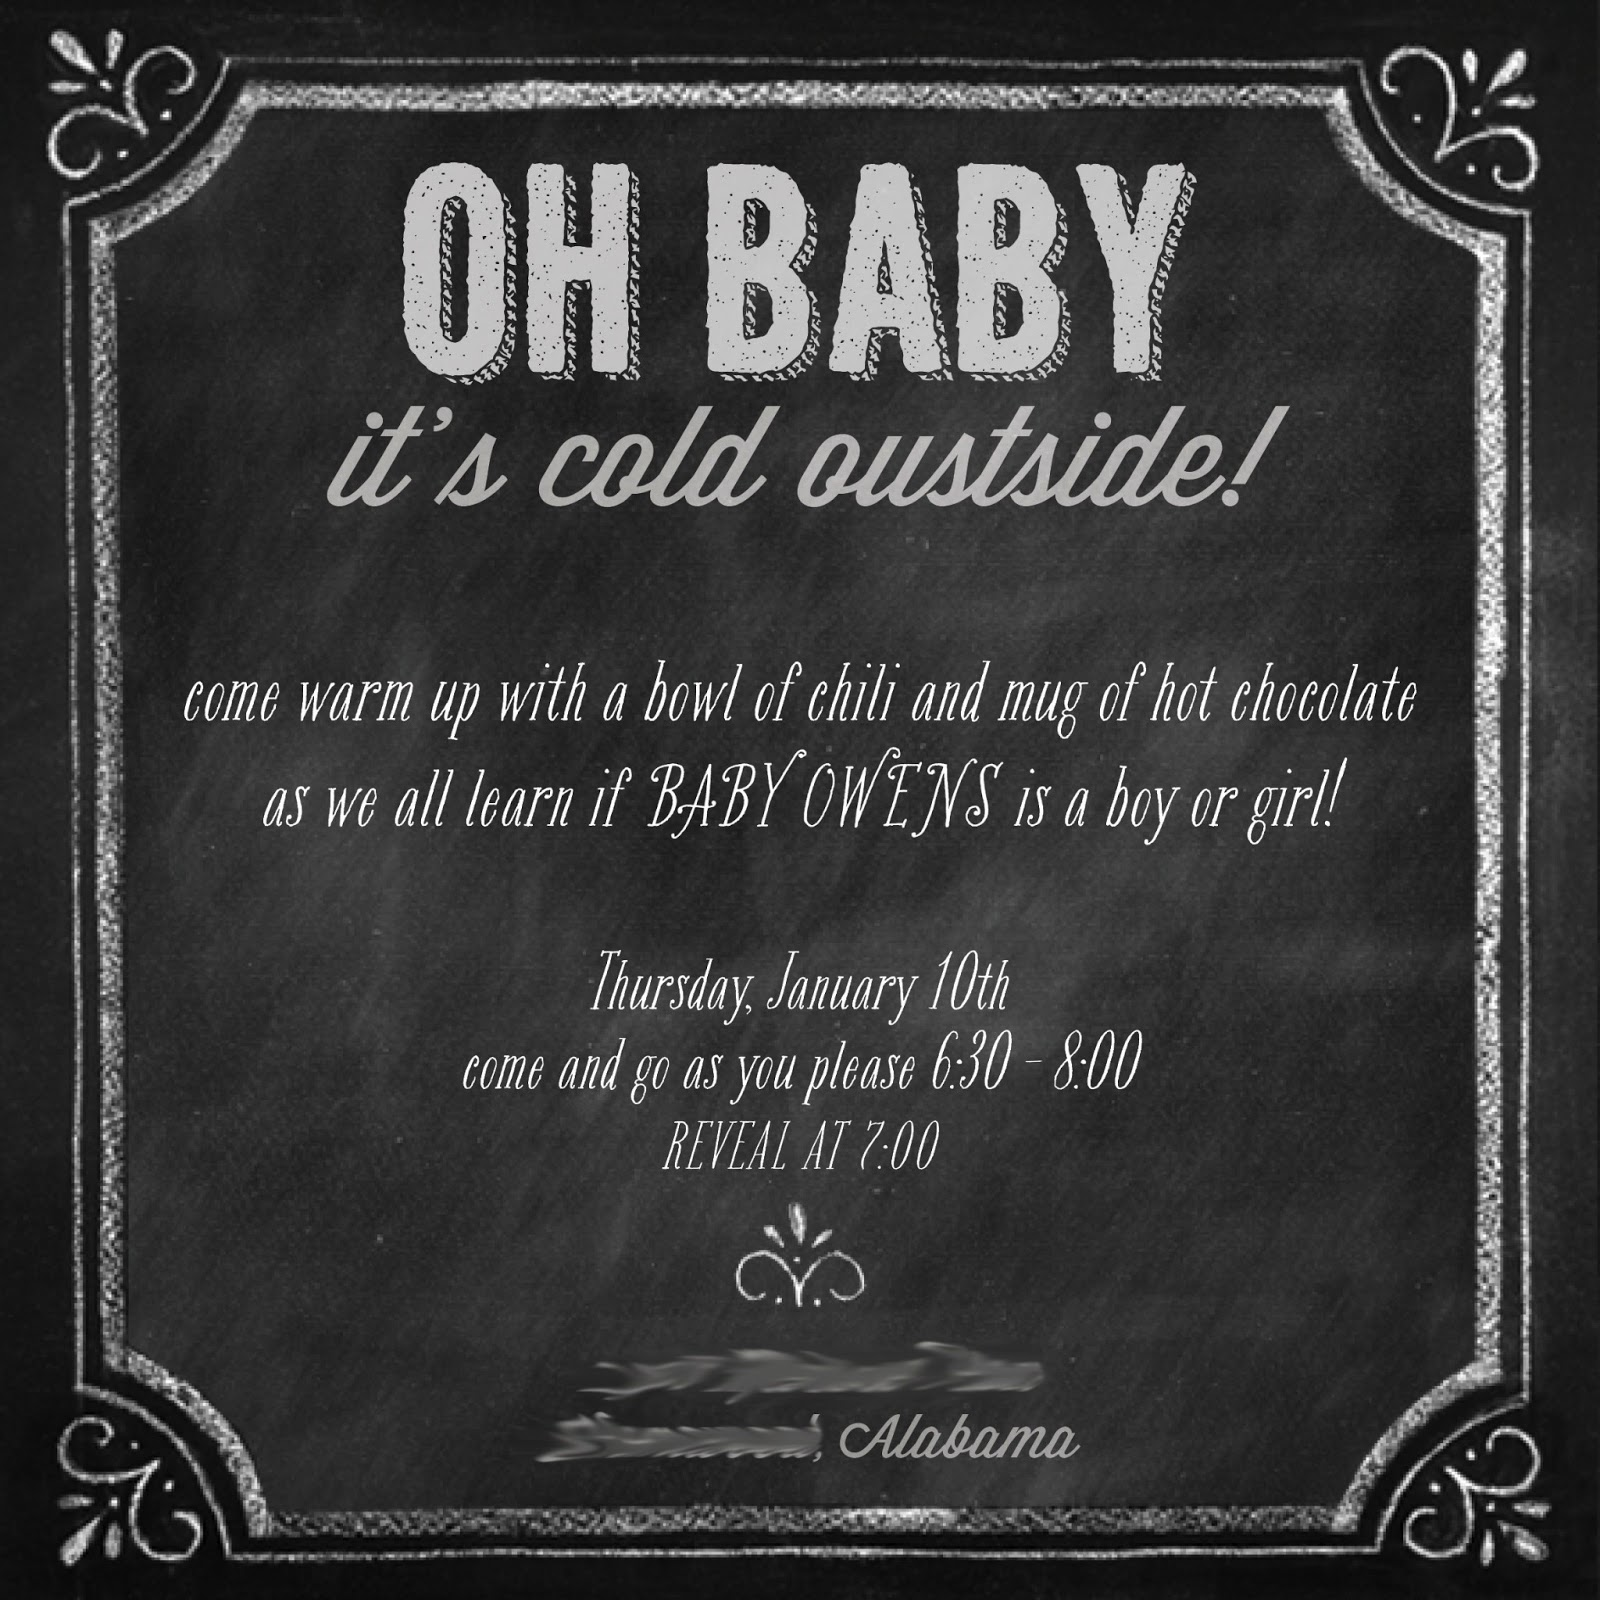 Reveal Party Invitations for adorable invitations example